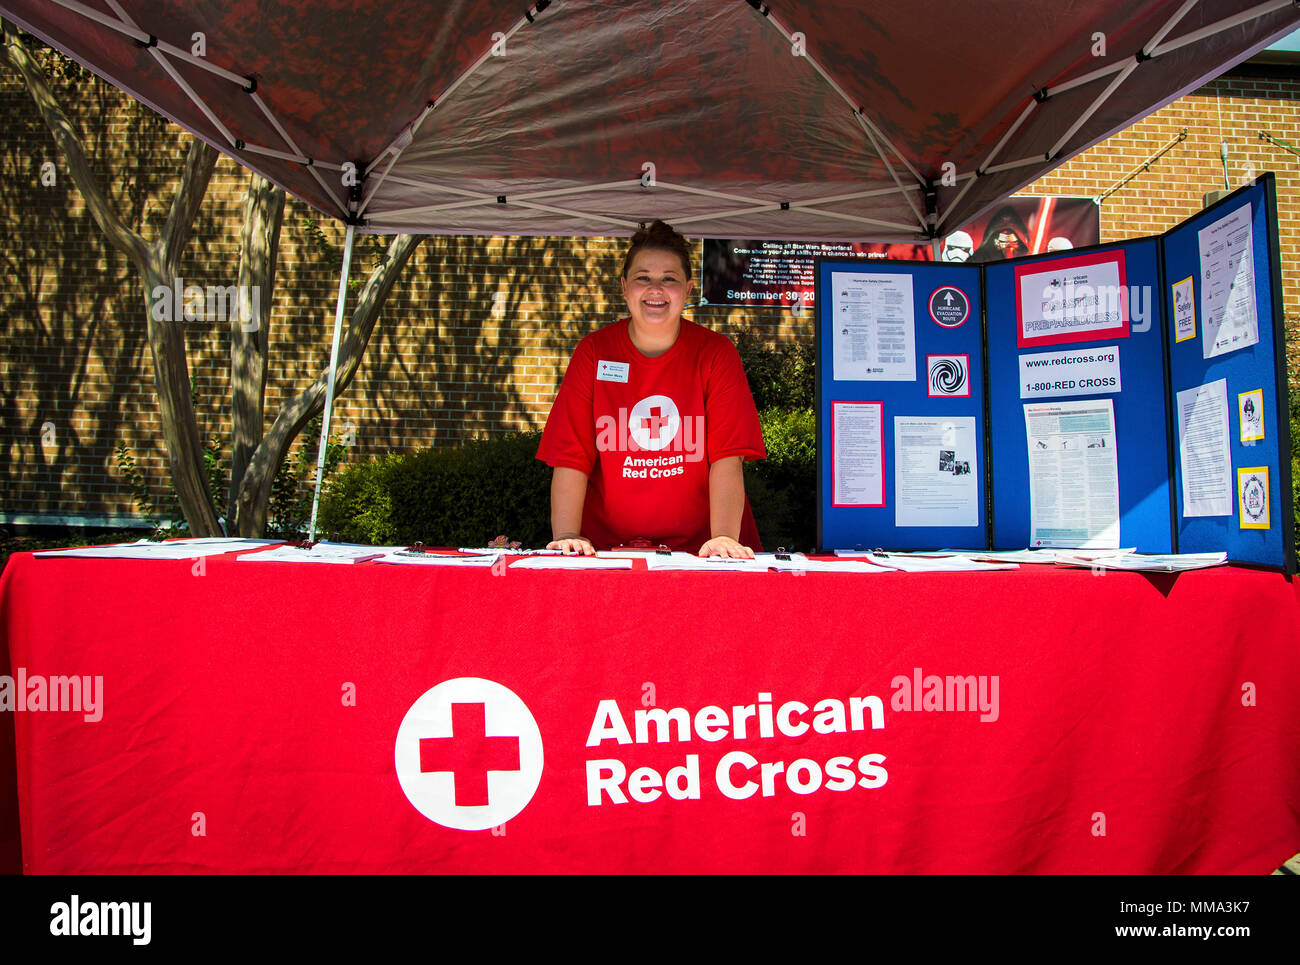 Amber Meza, American Red Cross (ARC) volunteer, poses for a